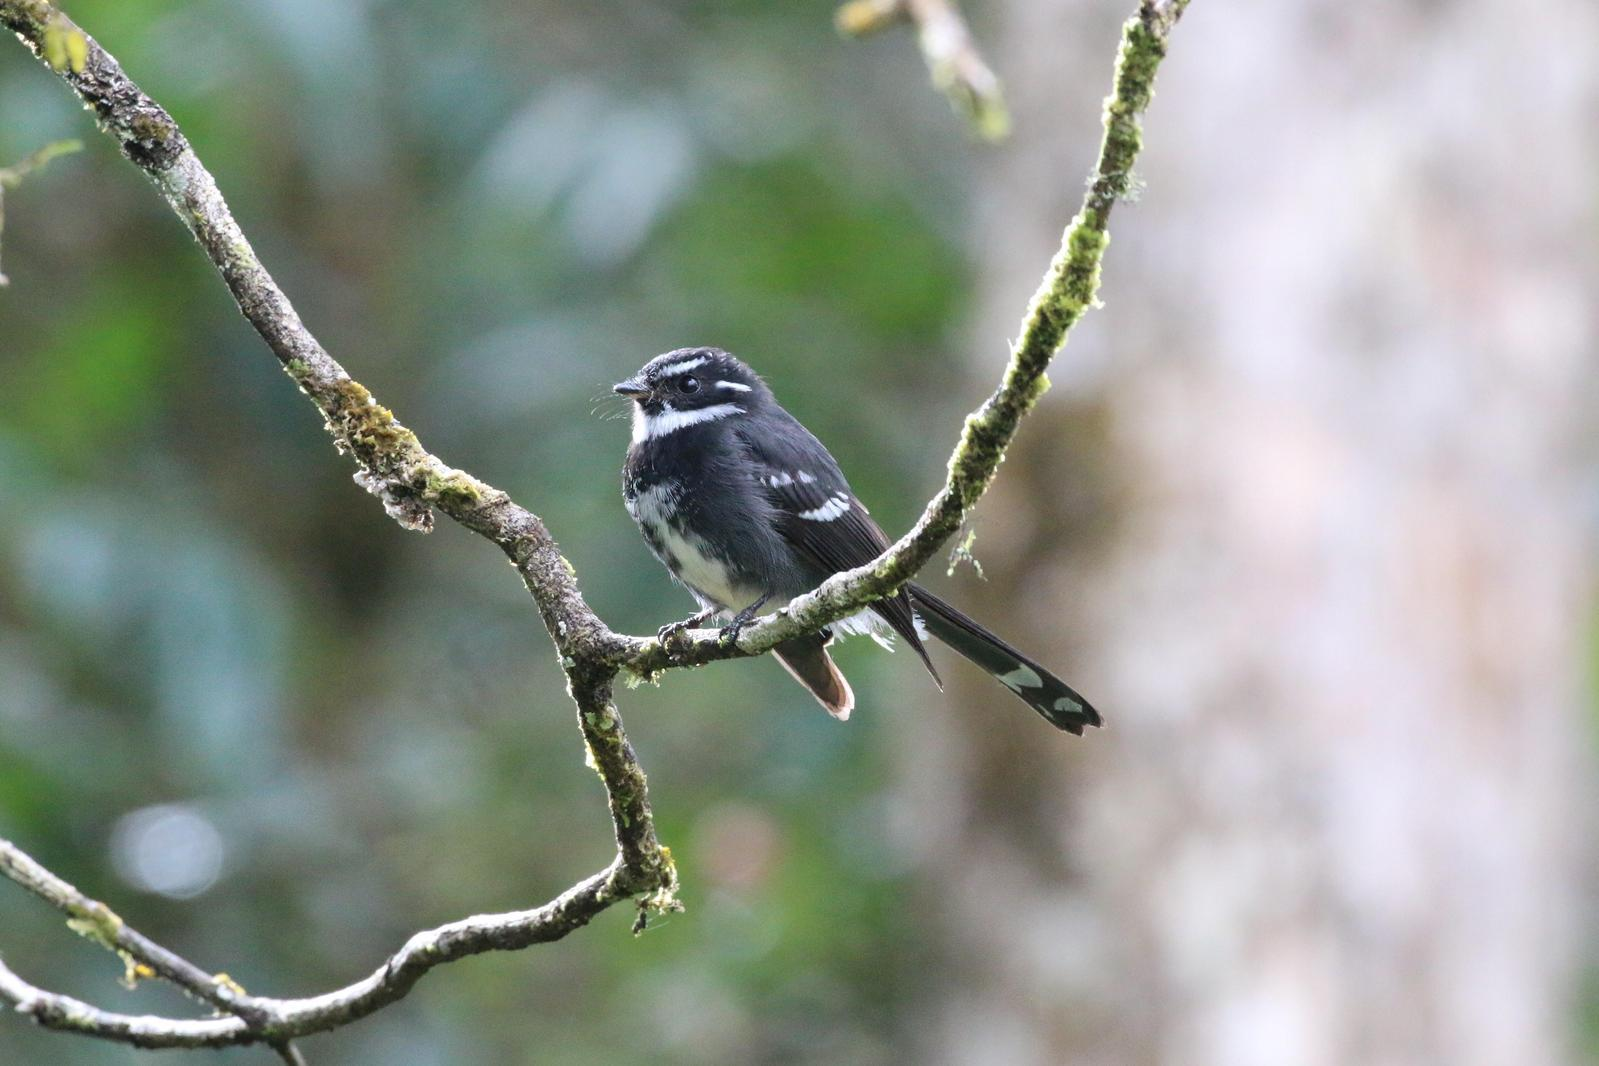 Friendly Fantail Photo by Richard Jeffers